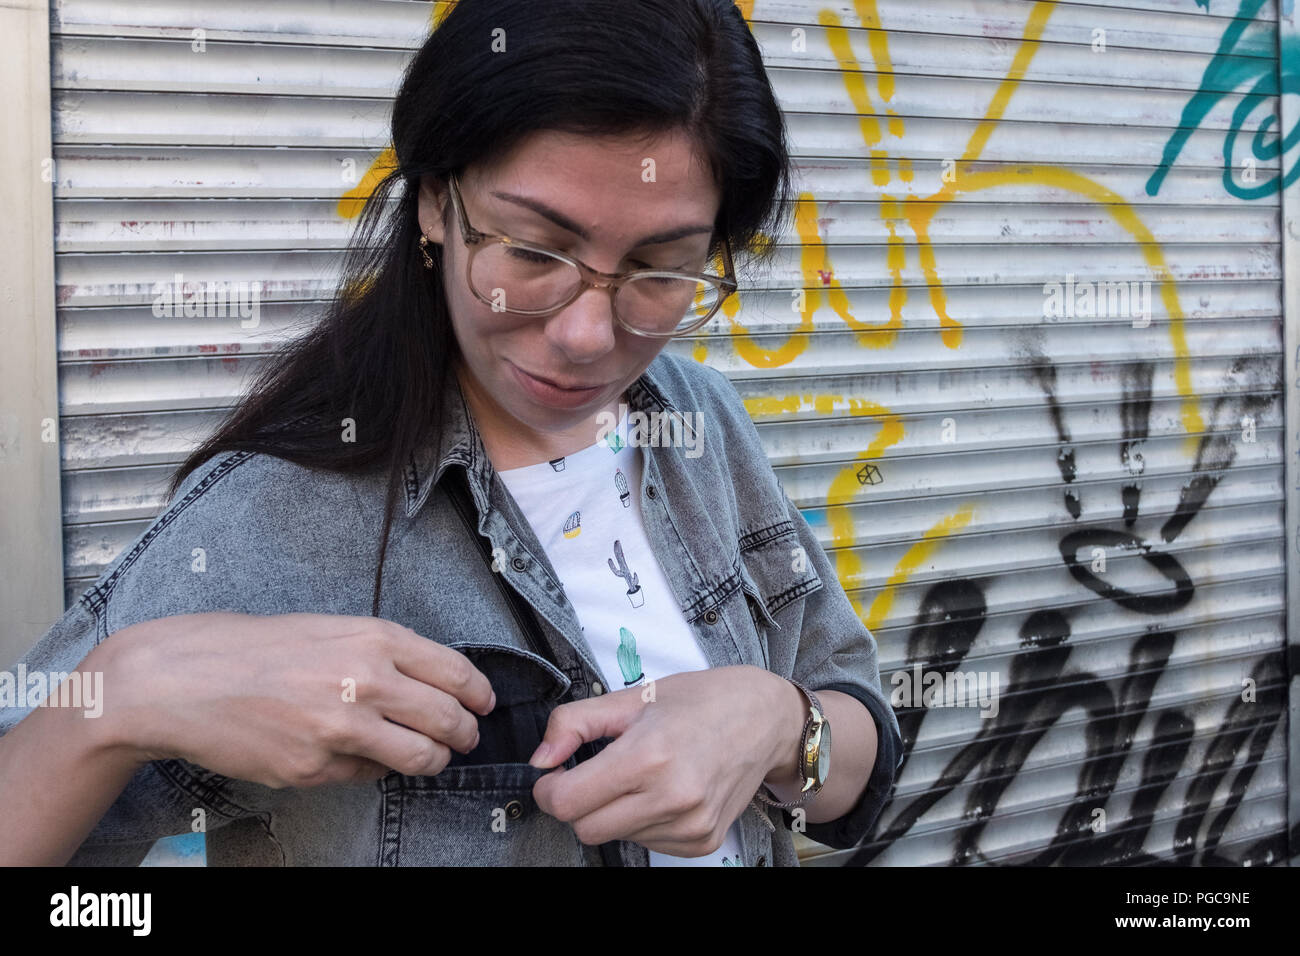 Young adult woman wearing glasses opening a shirt poket on the street, - Stock Image